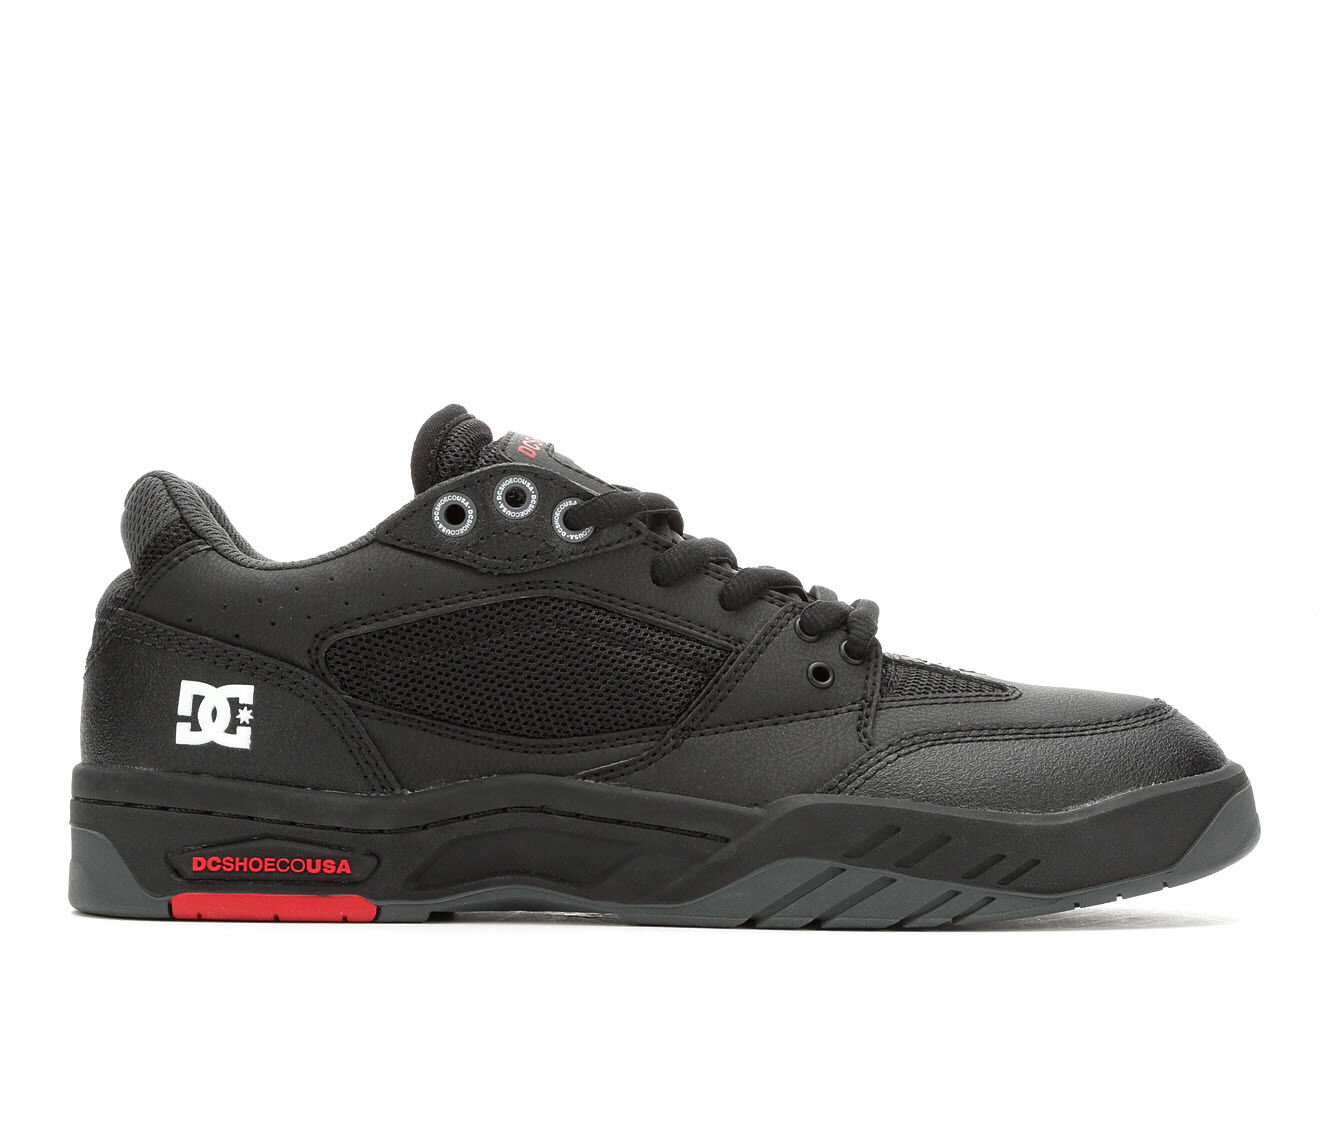 original brand Men's DC Maswell Skate Shoes Blk/Wht/Red